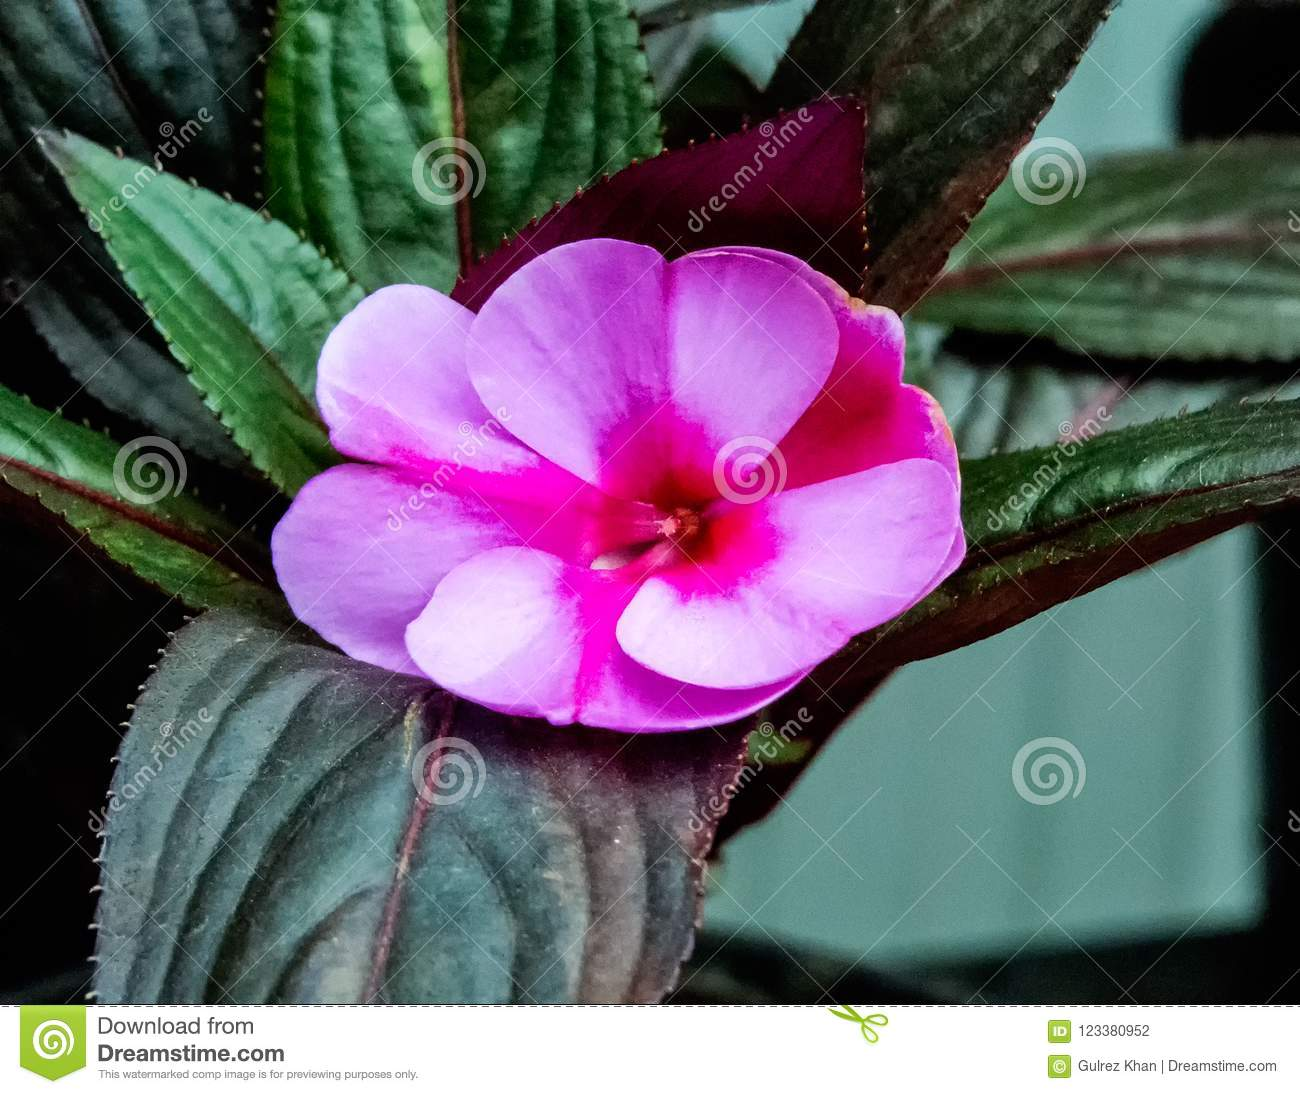 Indoor Plants, two shaded Pink Flower